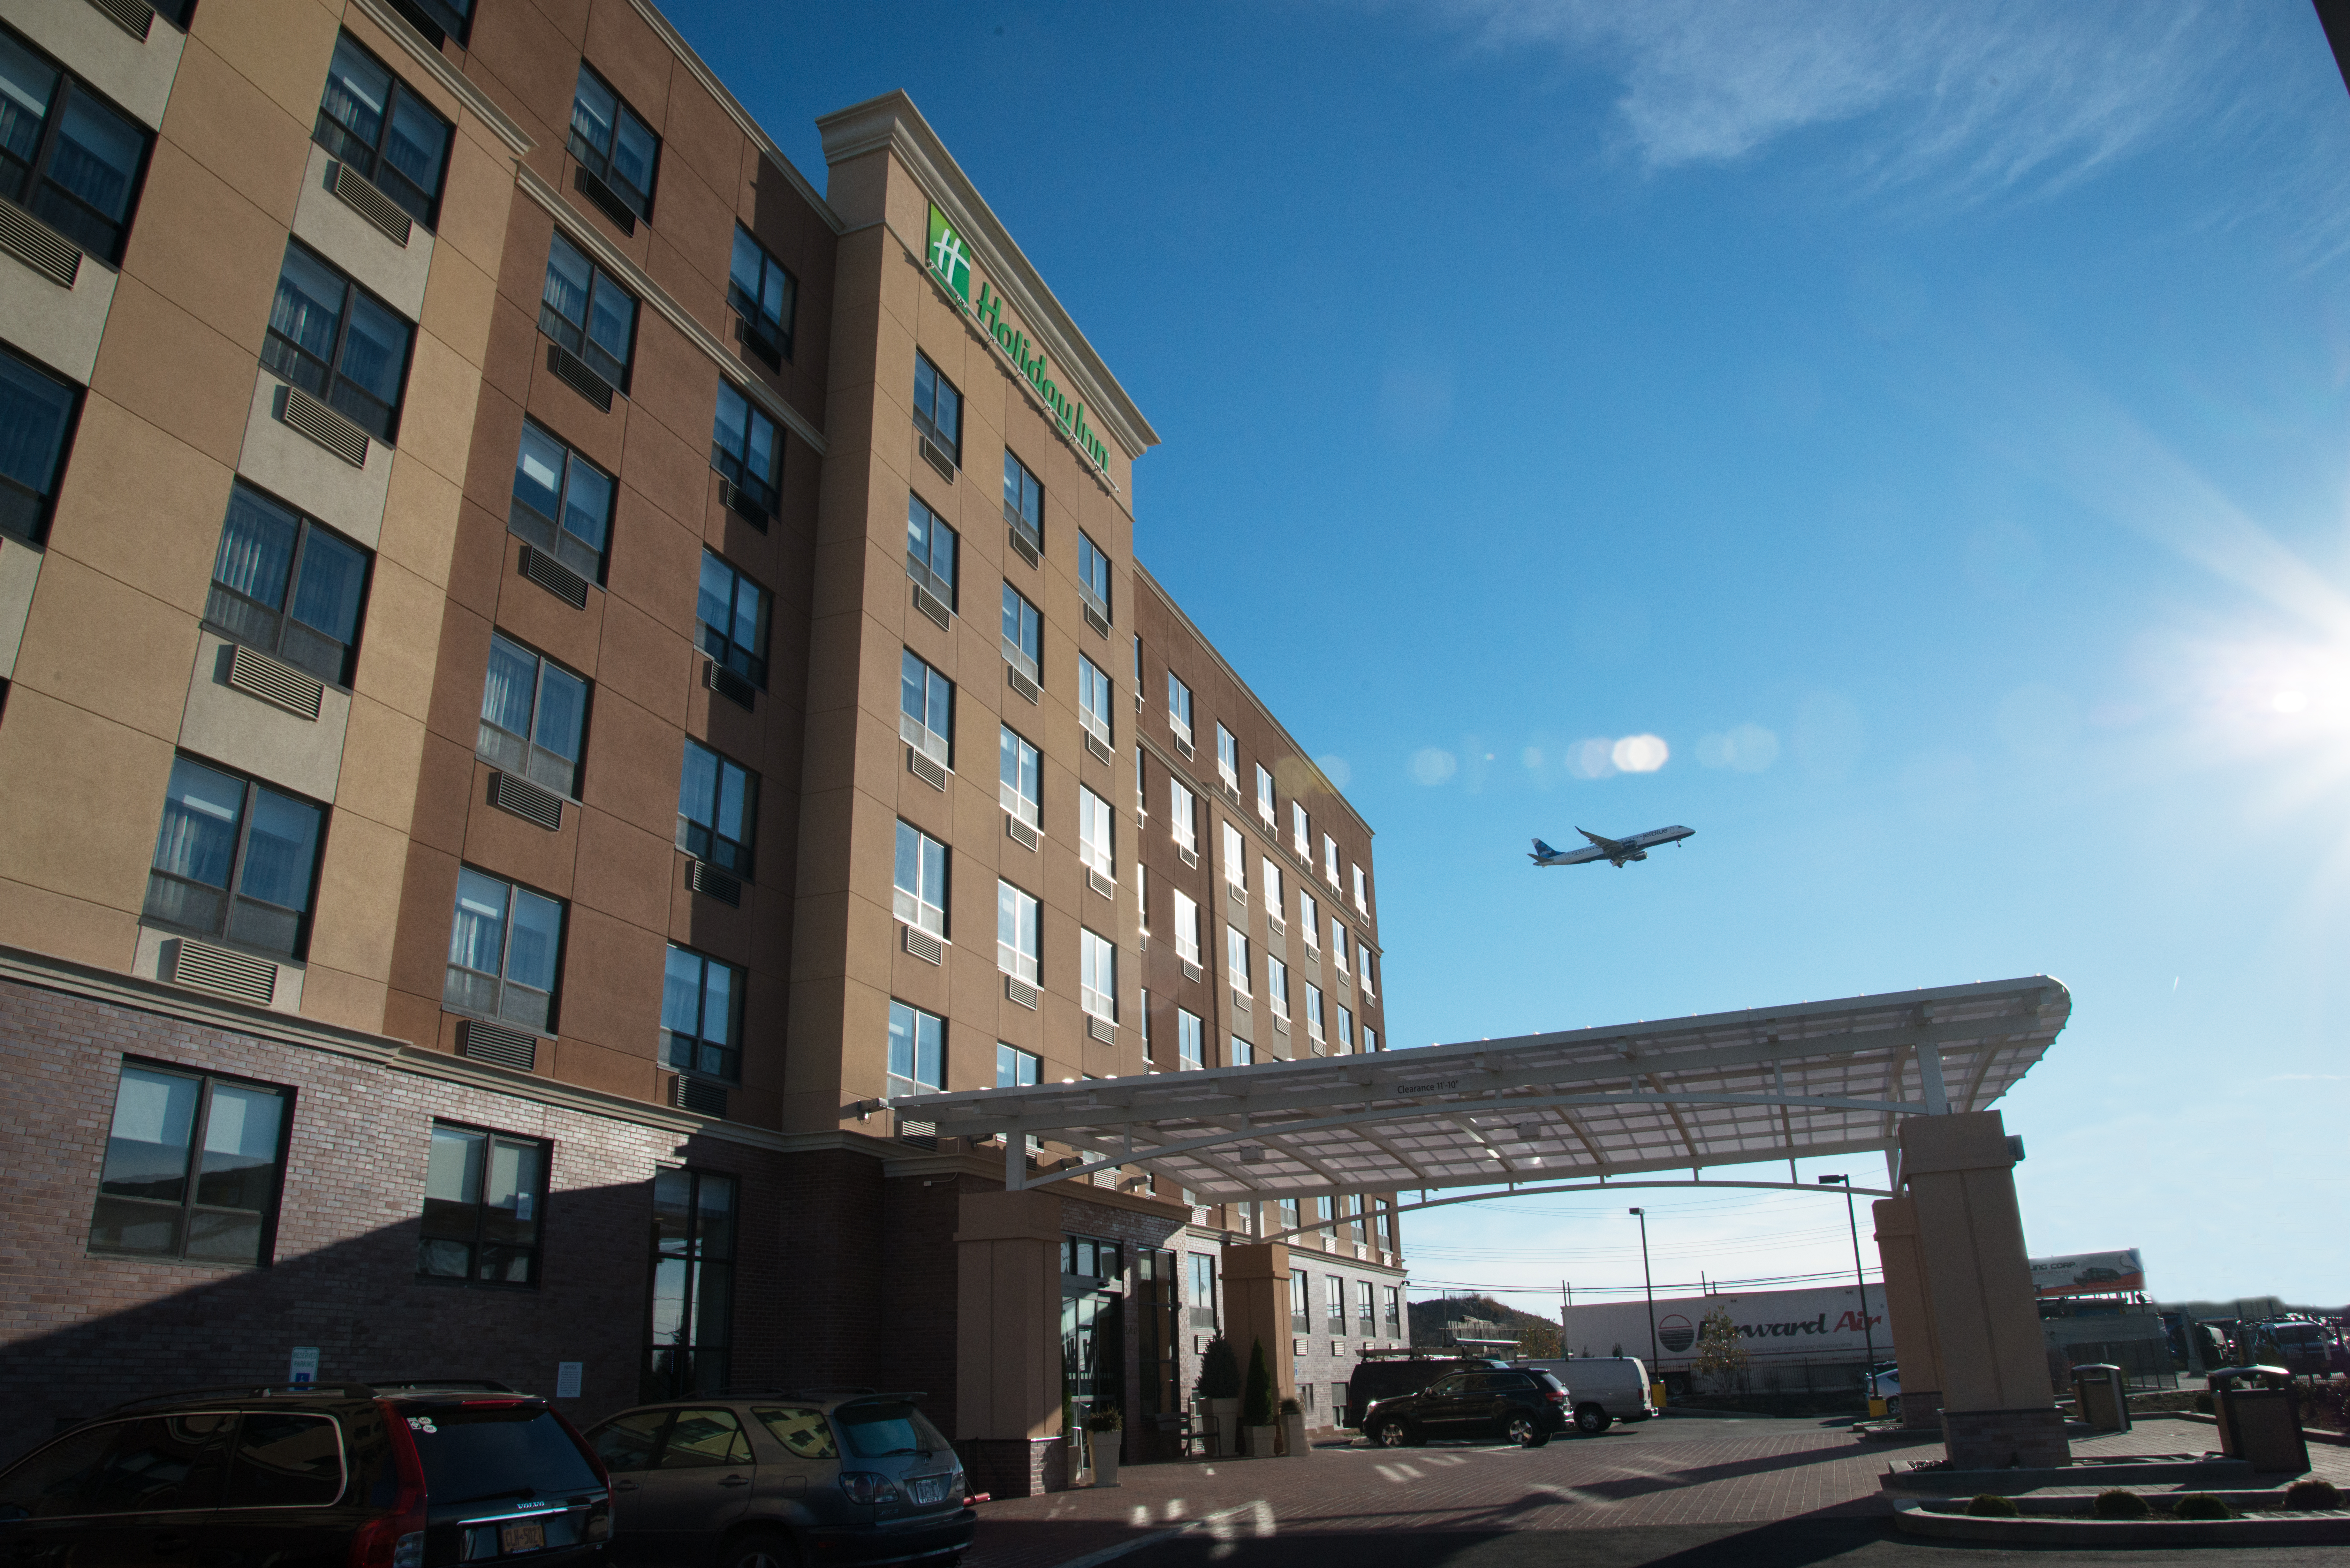 New 201 Room Holiday Inn Opens At Jfk Airport